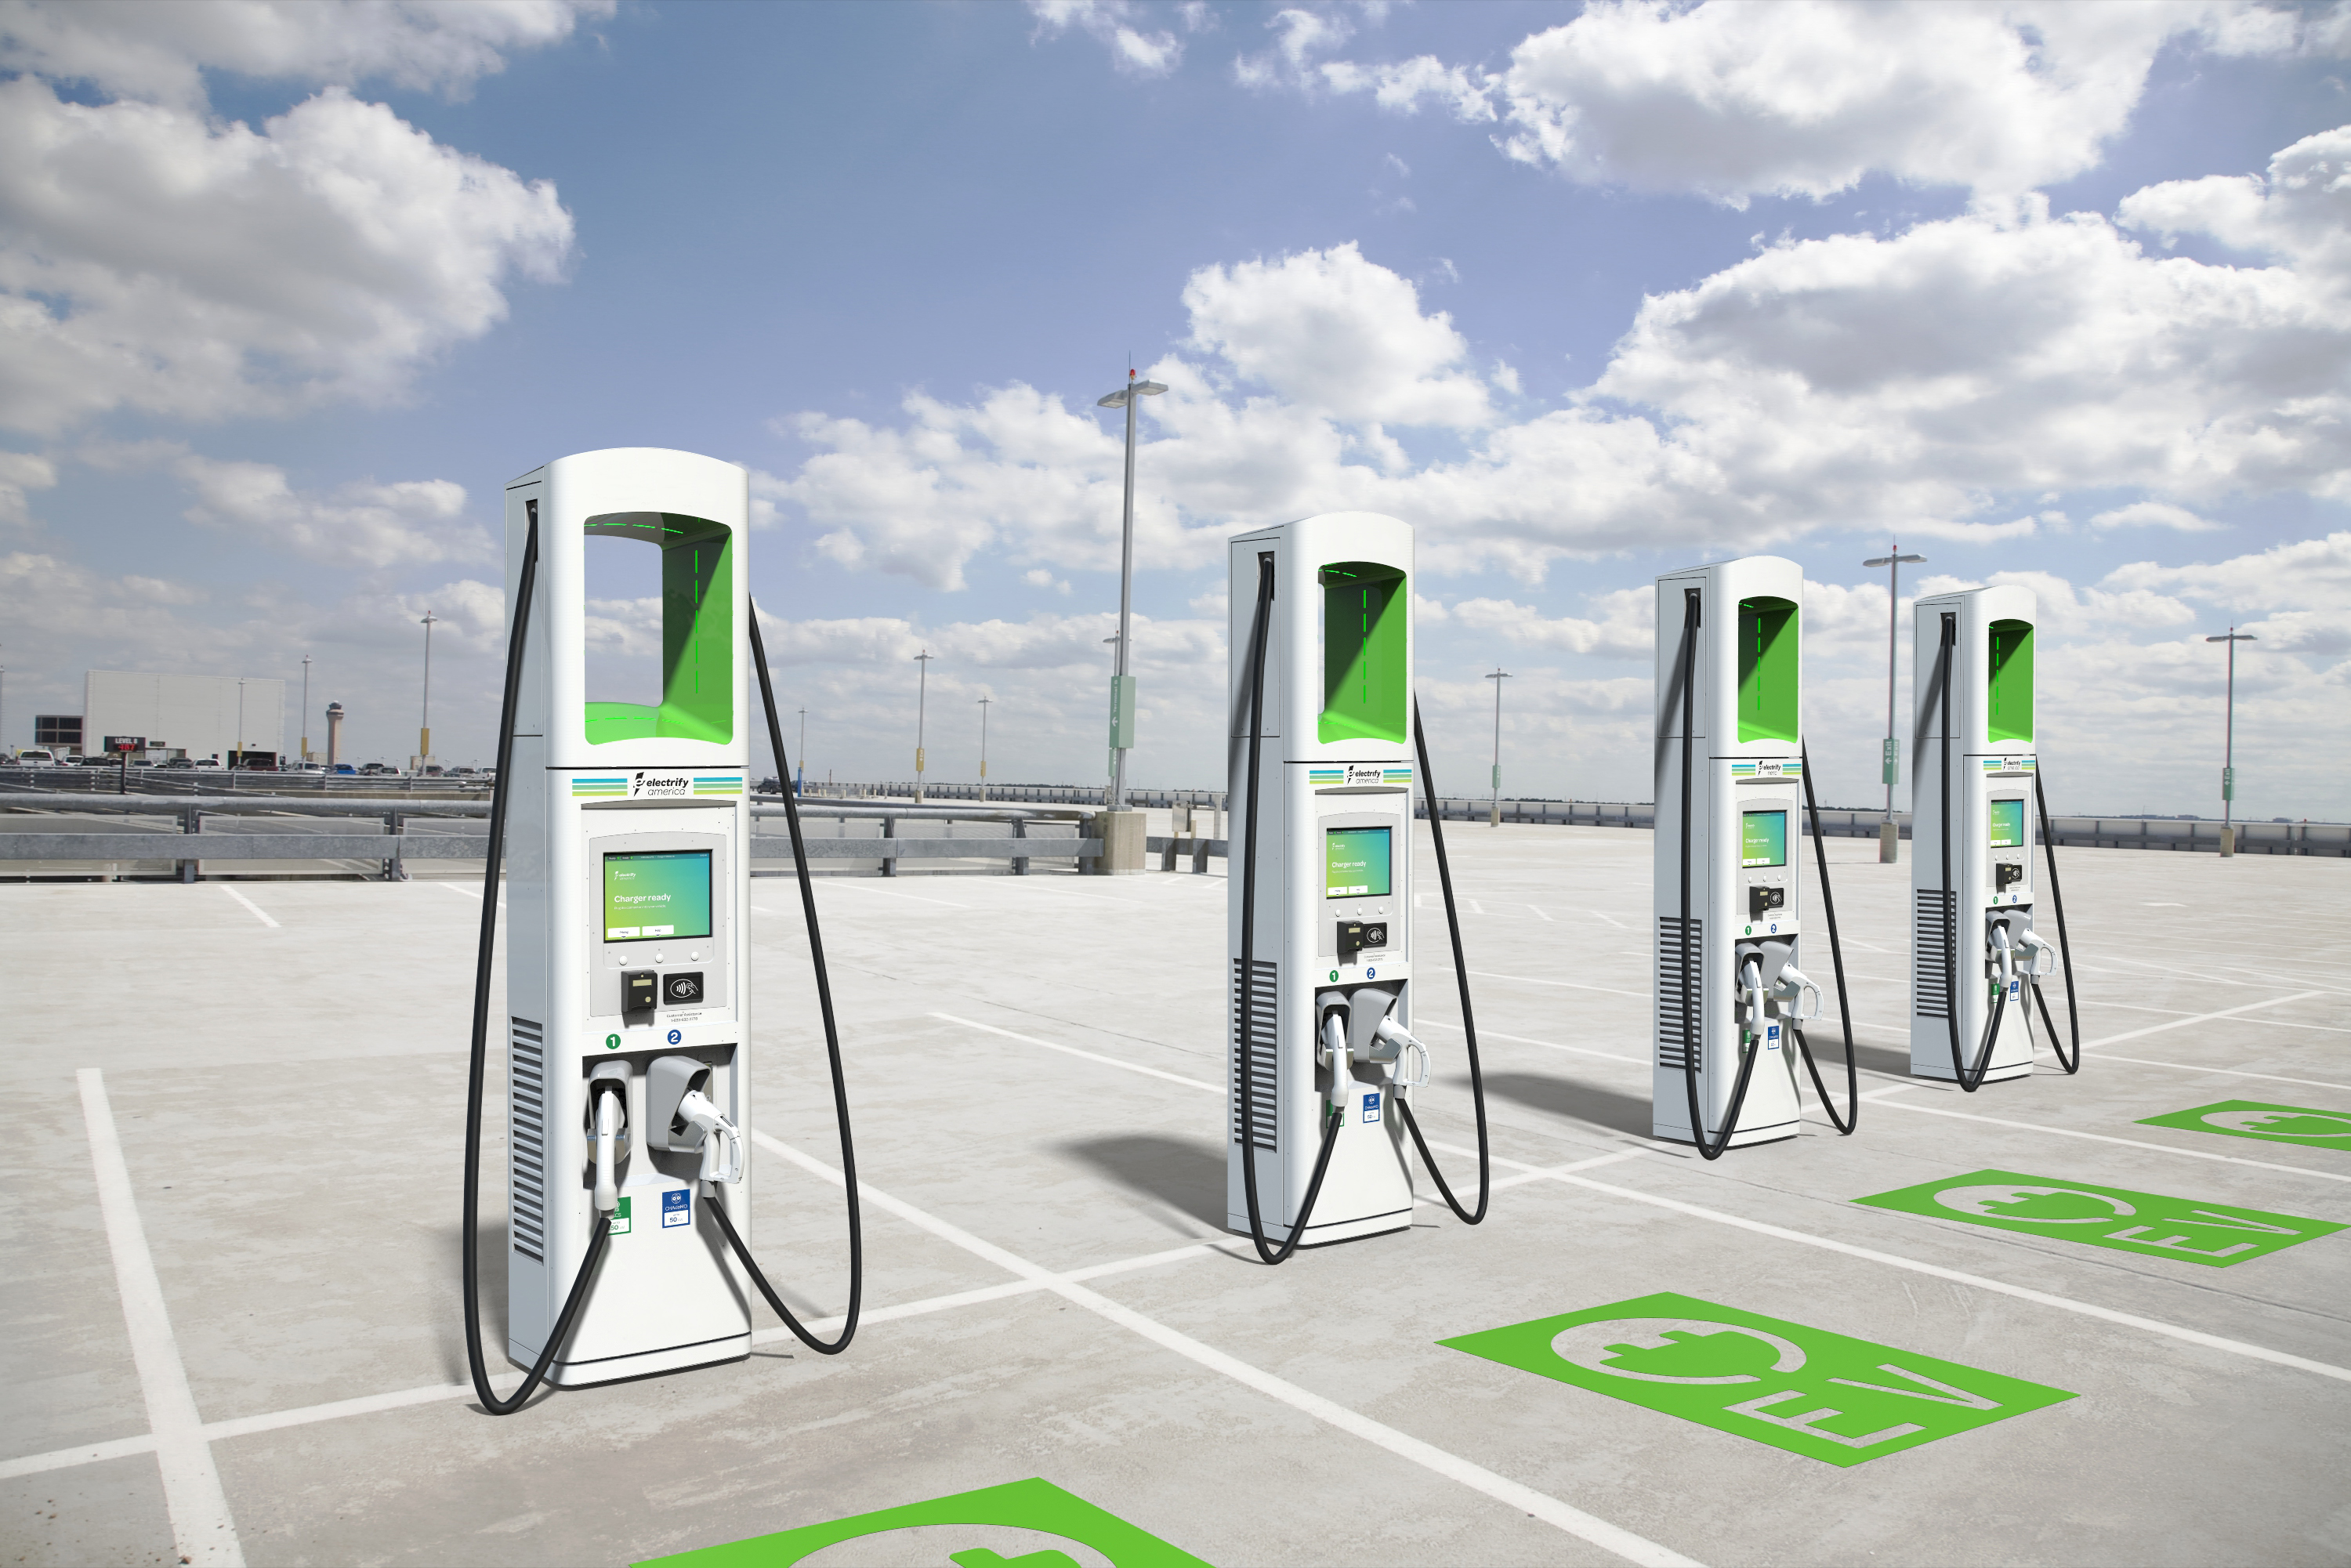 Electrify America chargers by BTC Power.